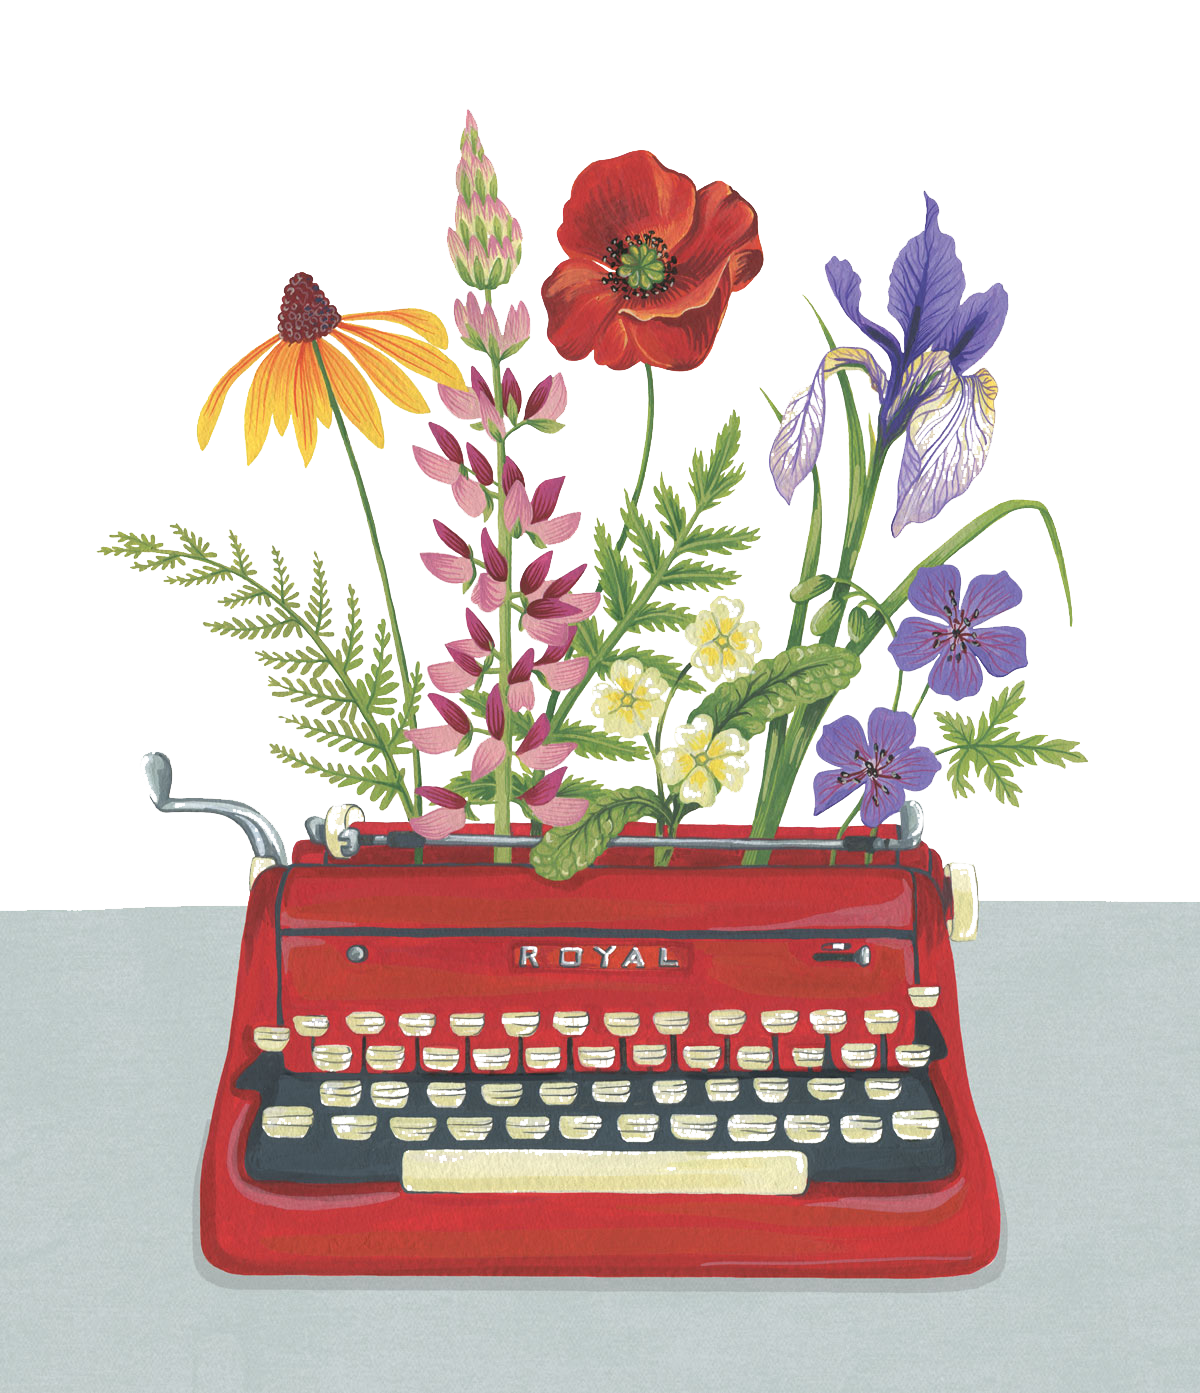 png freeuse Typewriter vector hand. Painted flowers figure transprent